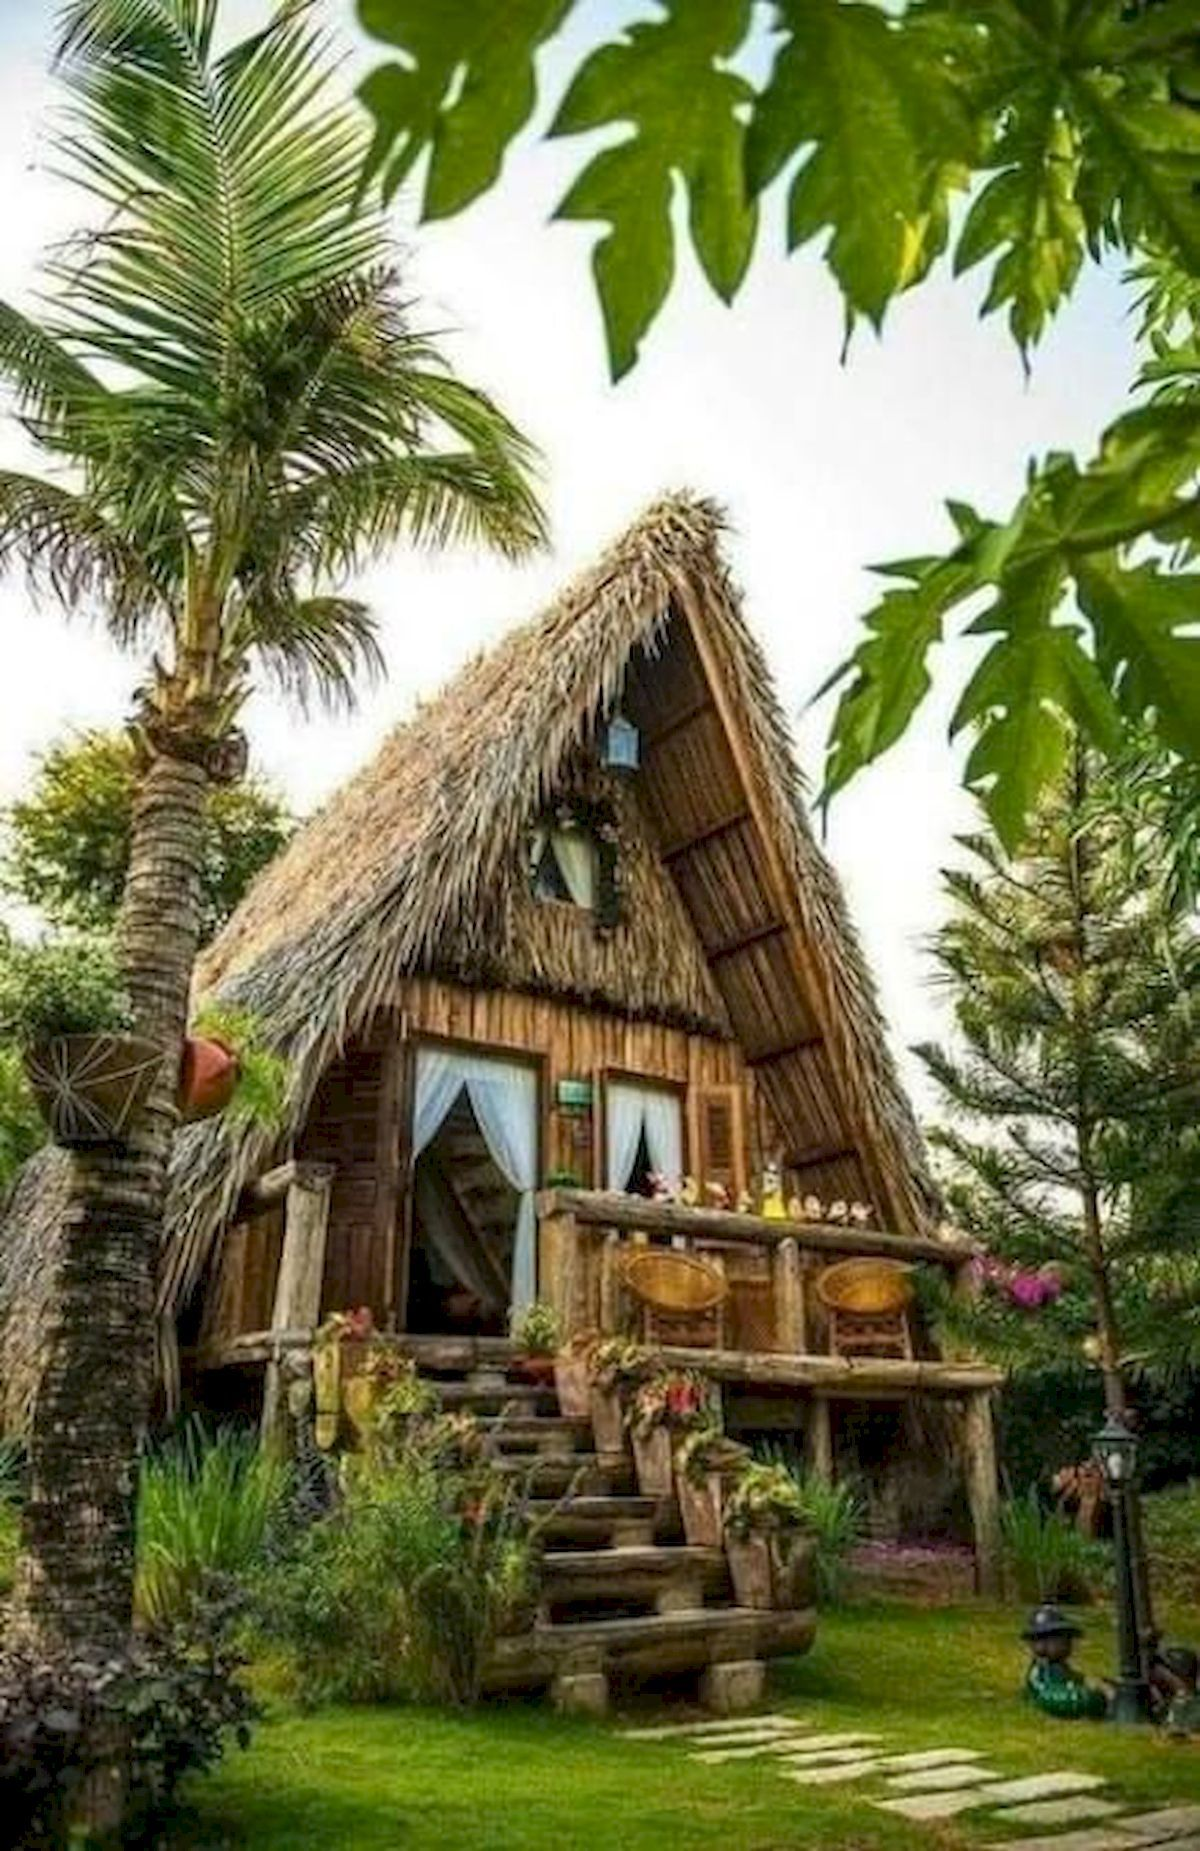 30 Awesome Beach House Design Ideas With More Pleasure In 2020 Bamboo House Design Cottage Design Hut House